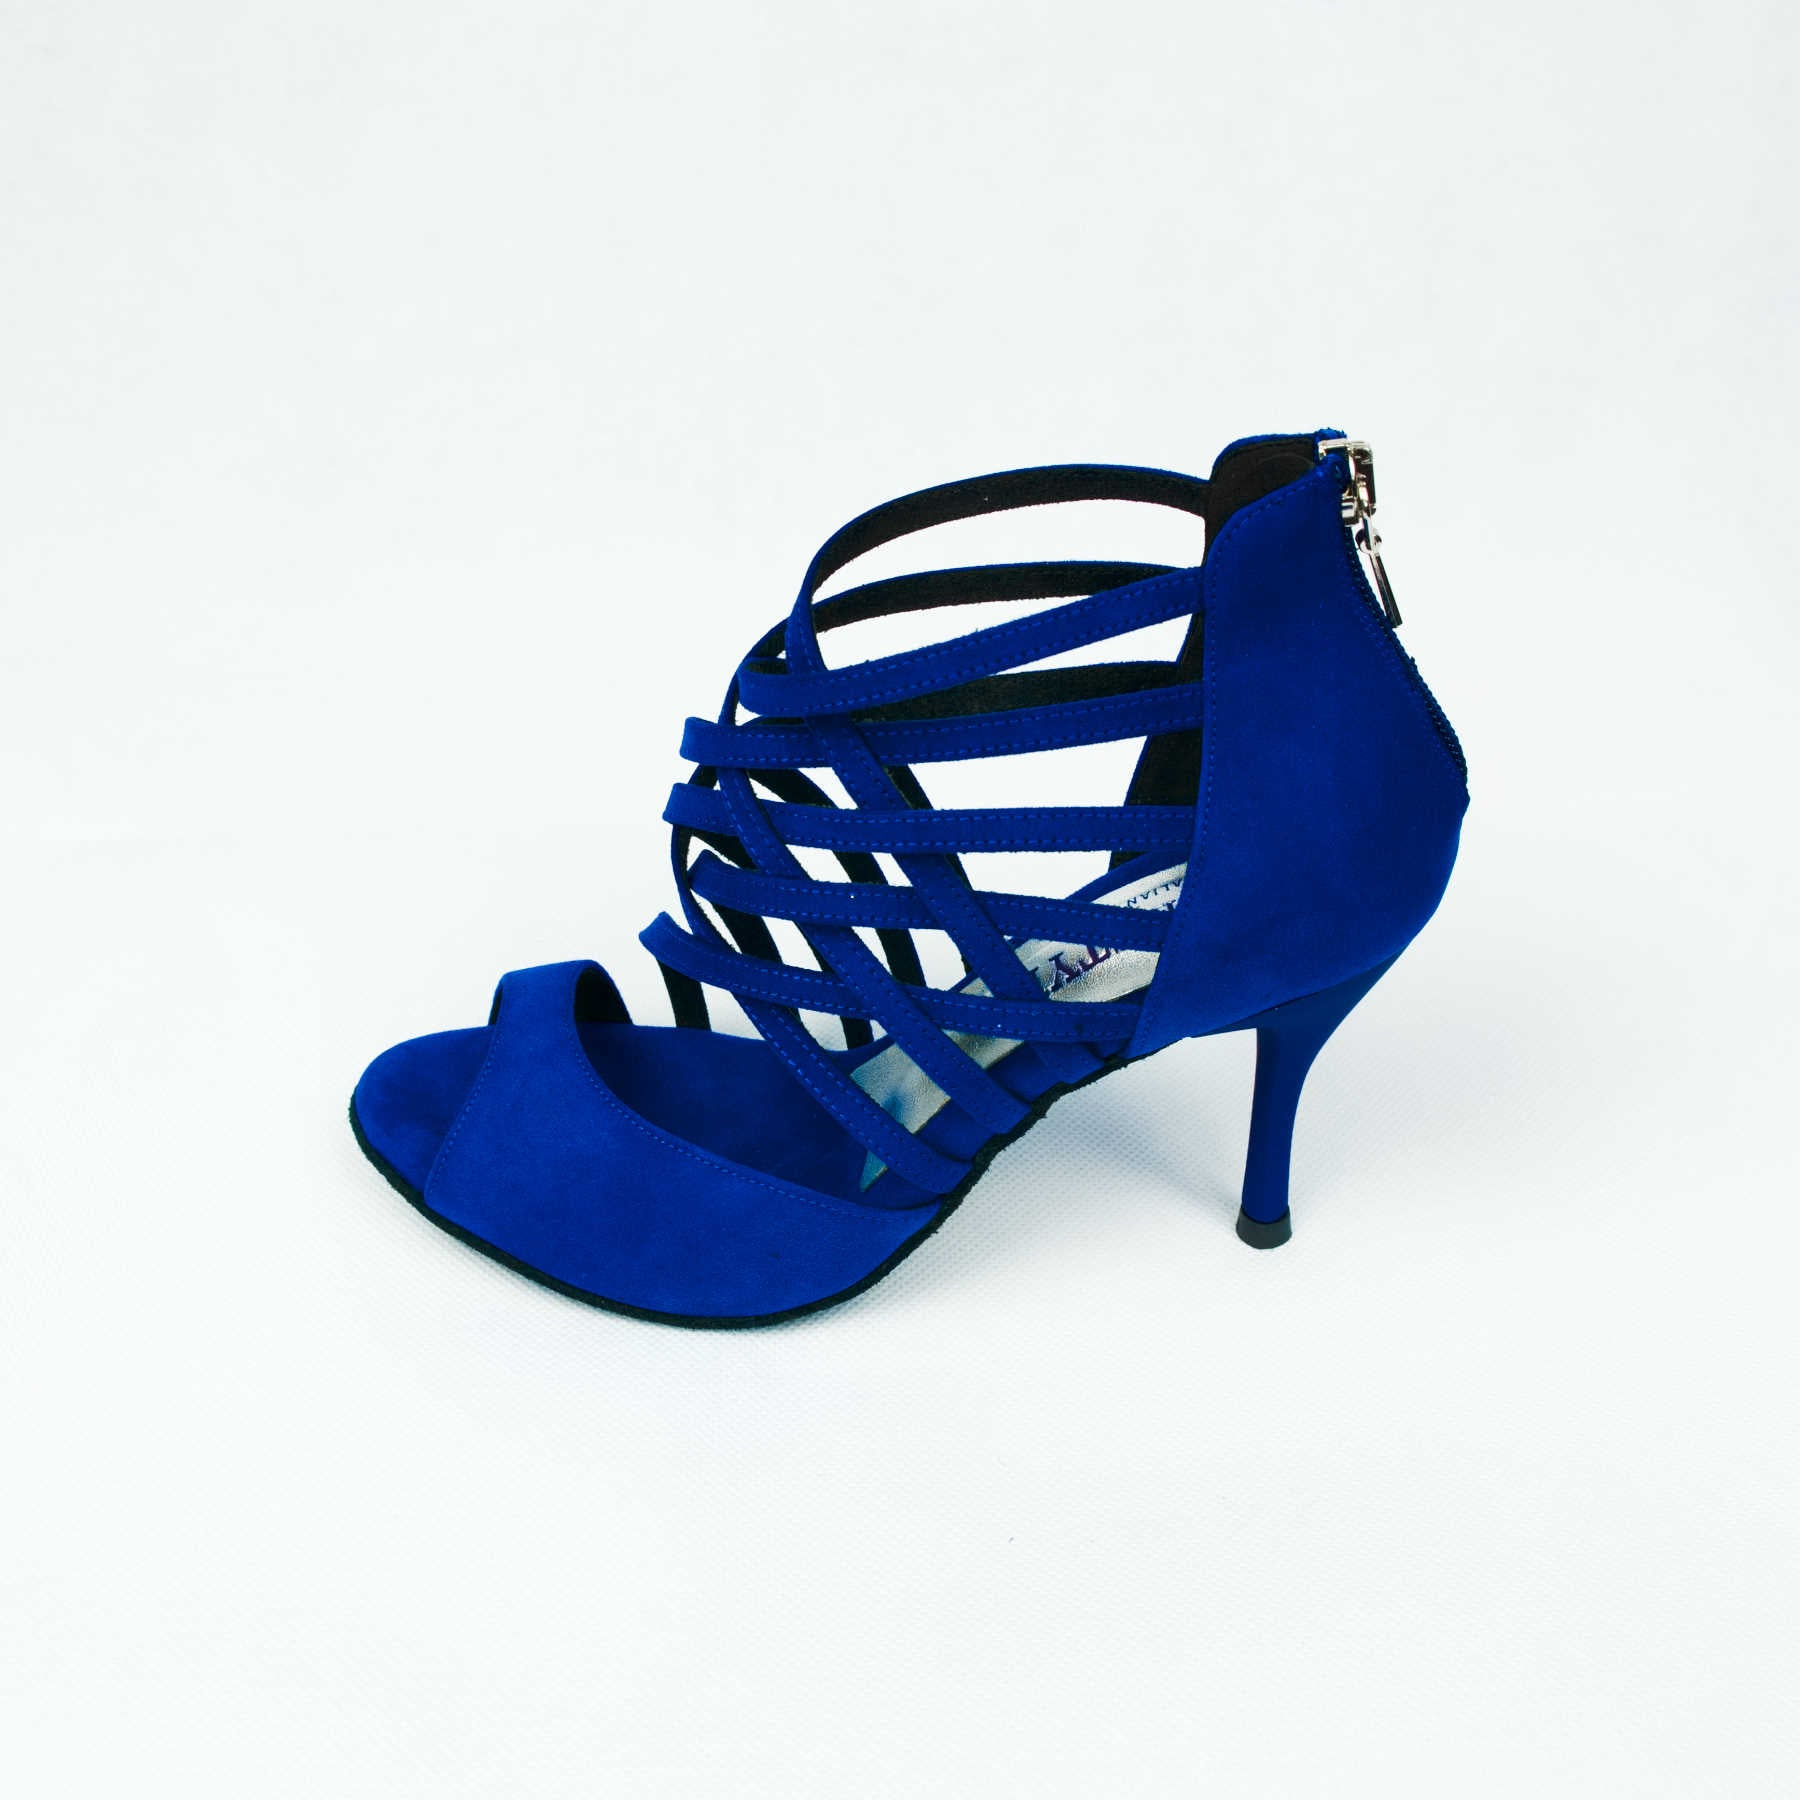 dance in style - madrid blue Italian made women dance shoe, 30 day return policy, flat rate shipping.